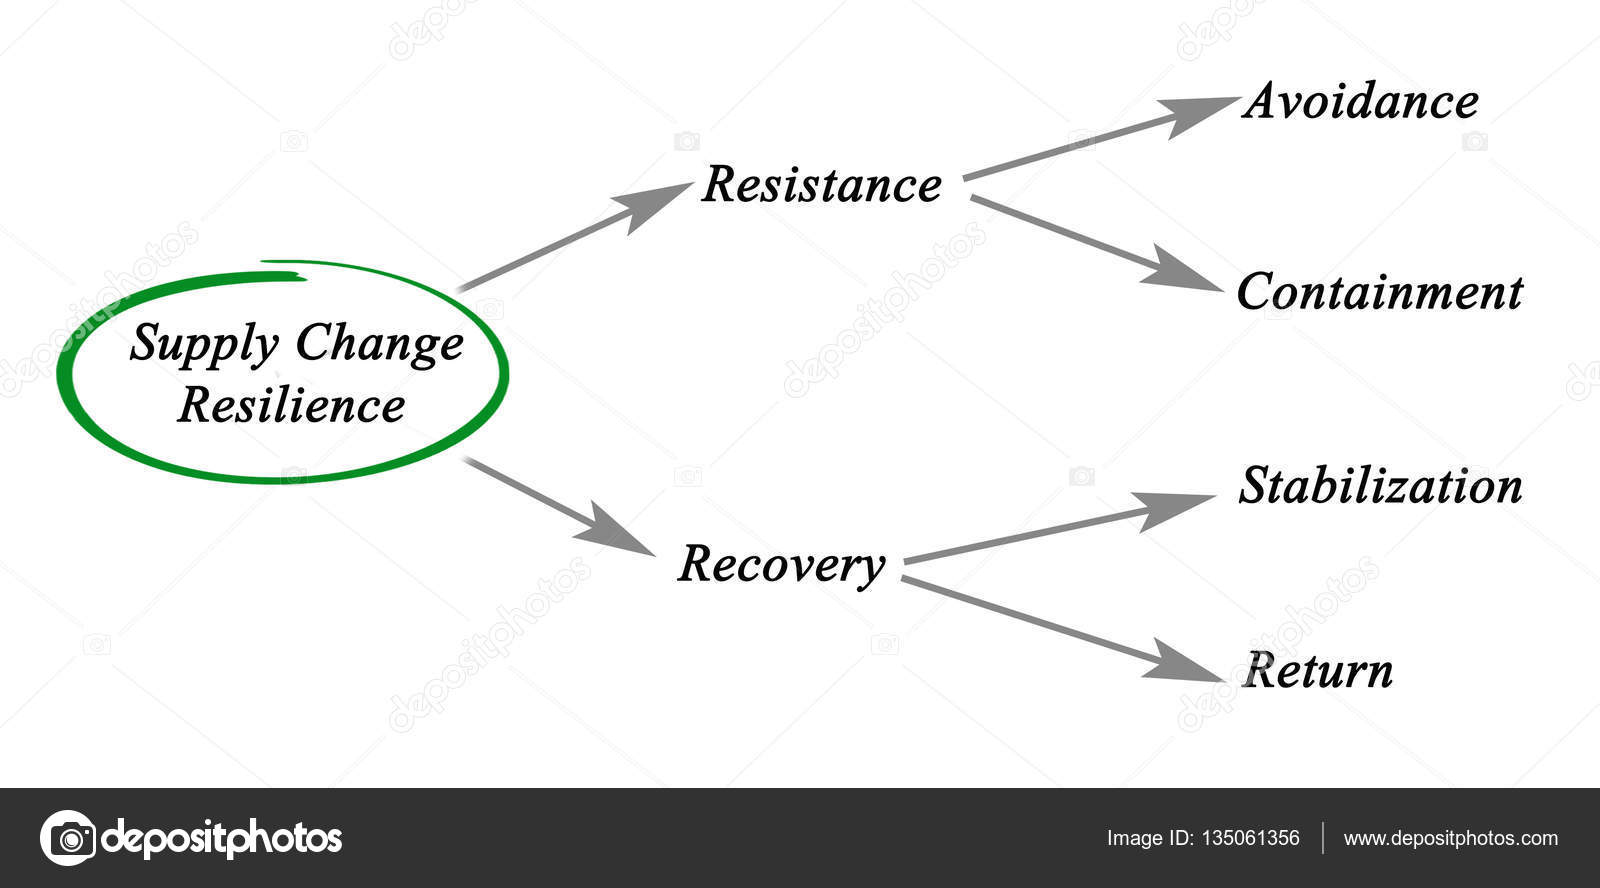 hight resolution of diagram of supply chain resilience photo by vaeenma